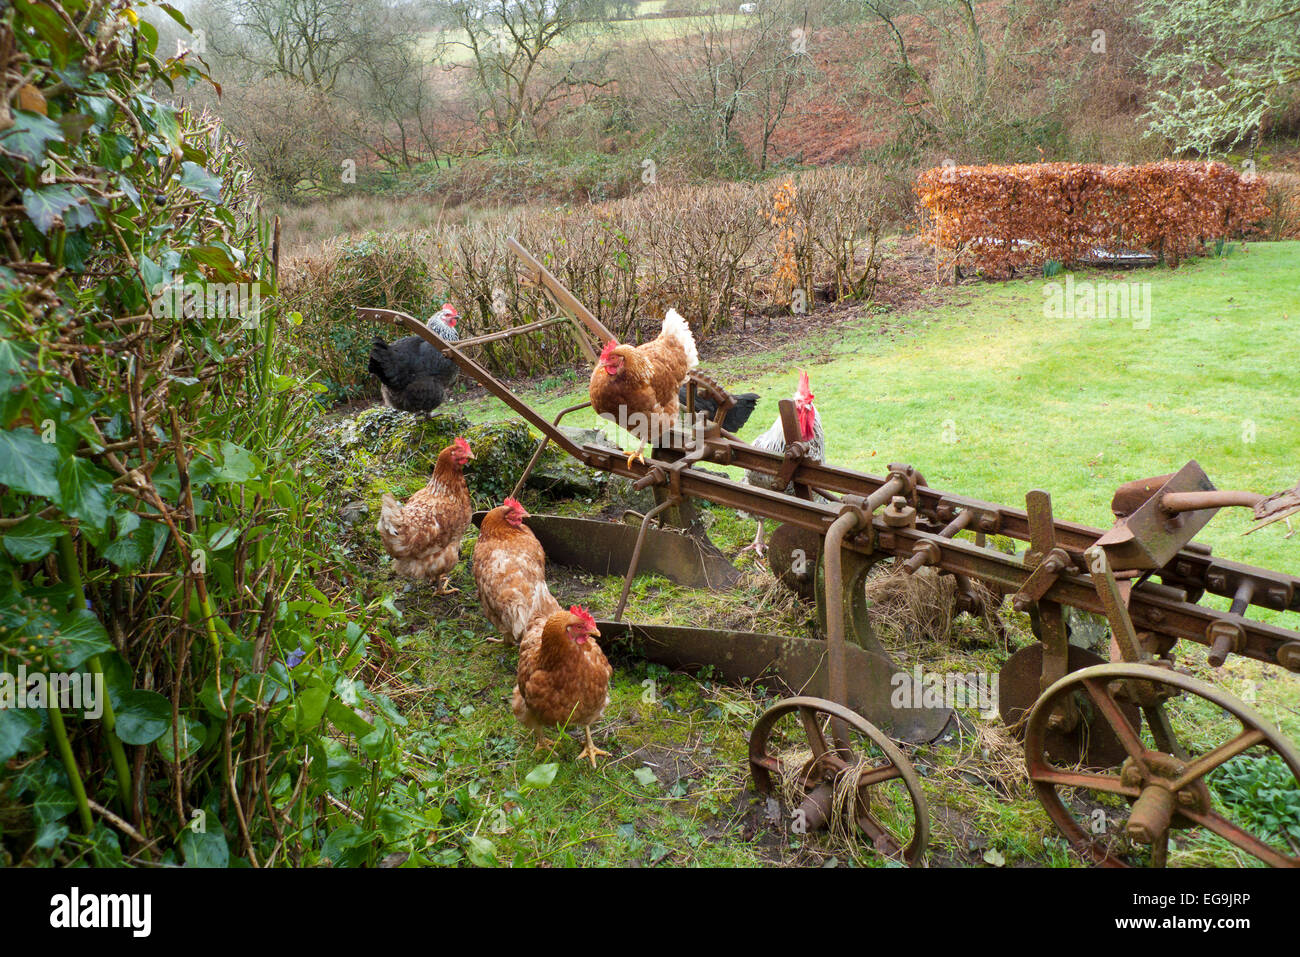 Free range hens perch on an old rusty in a smallholding rural garden in Carmarthenshire, West Wales UK  KATHY DEWITT - Stock Image